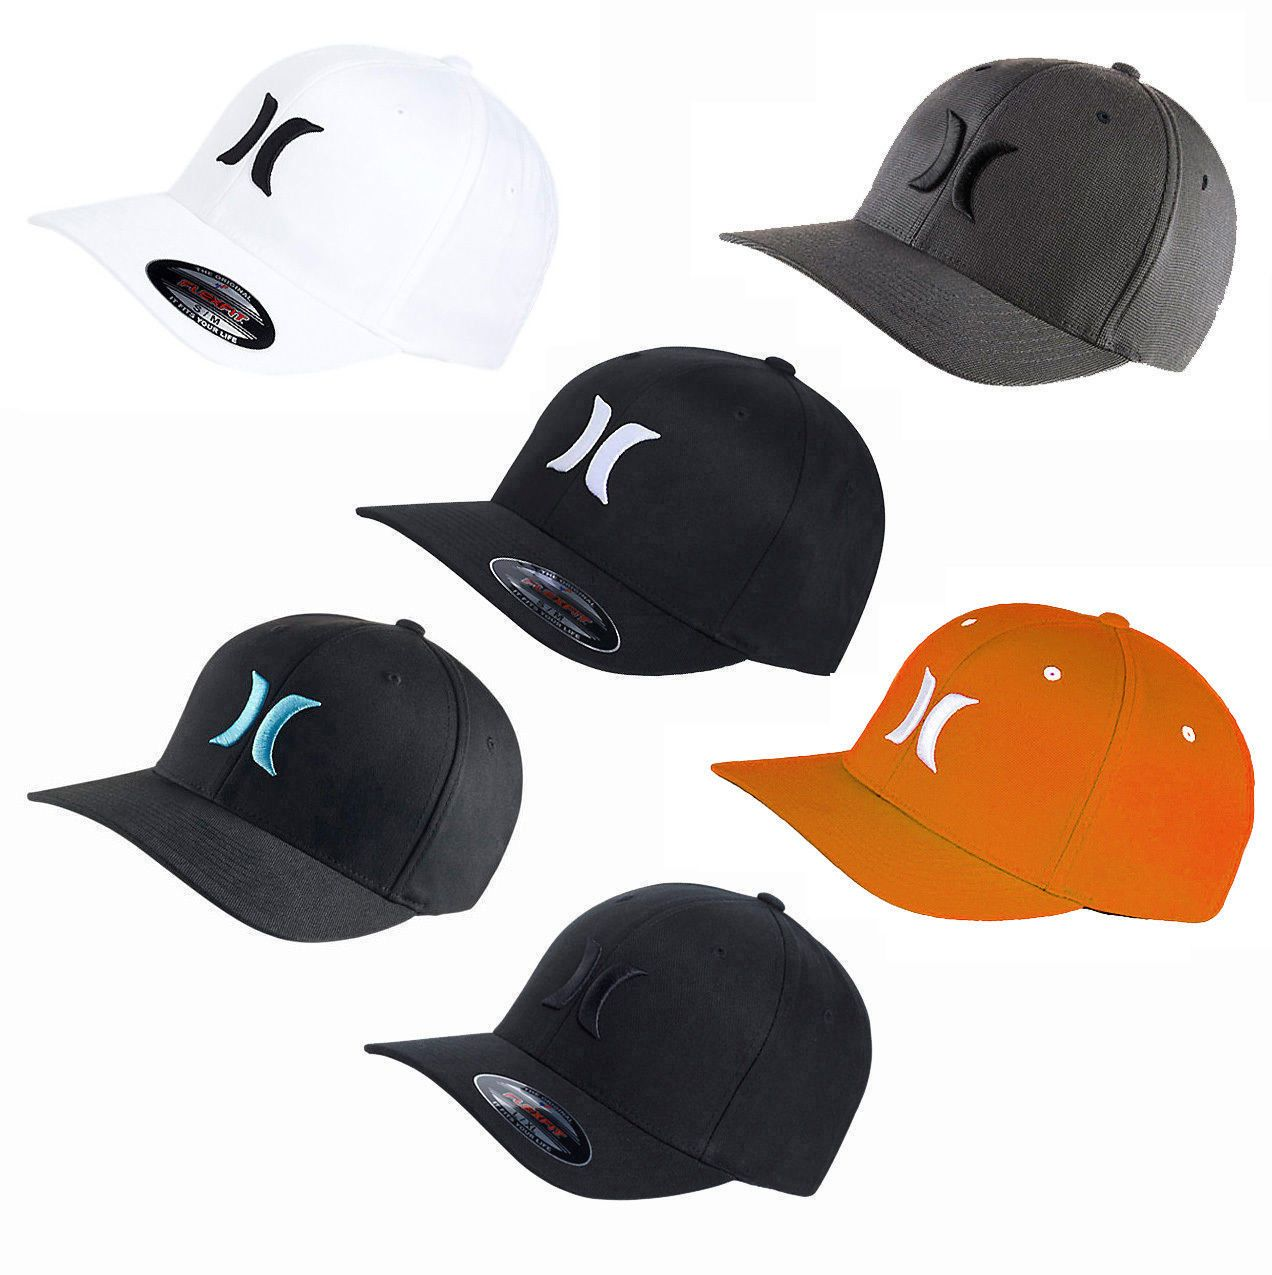 80effef13 Hats 52365: Hurley One And Only Flexfit Hat Cap Beanie Snapback Surf ...